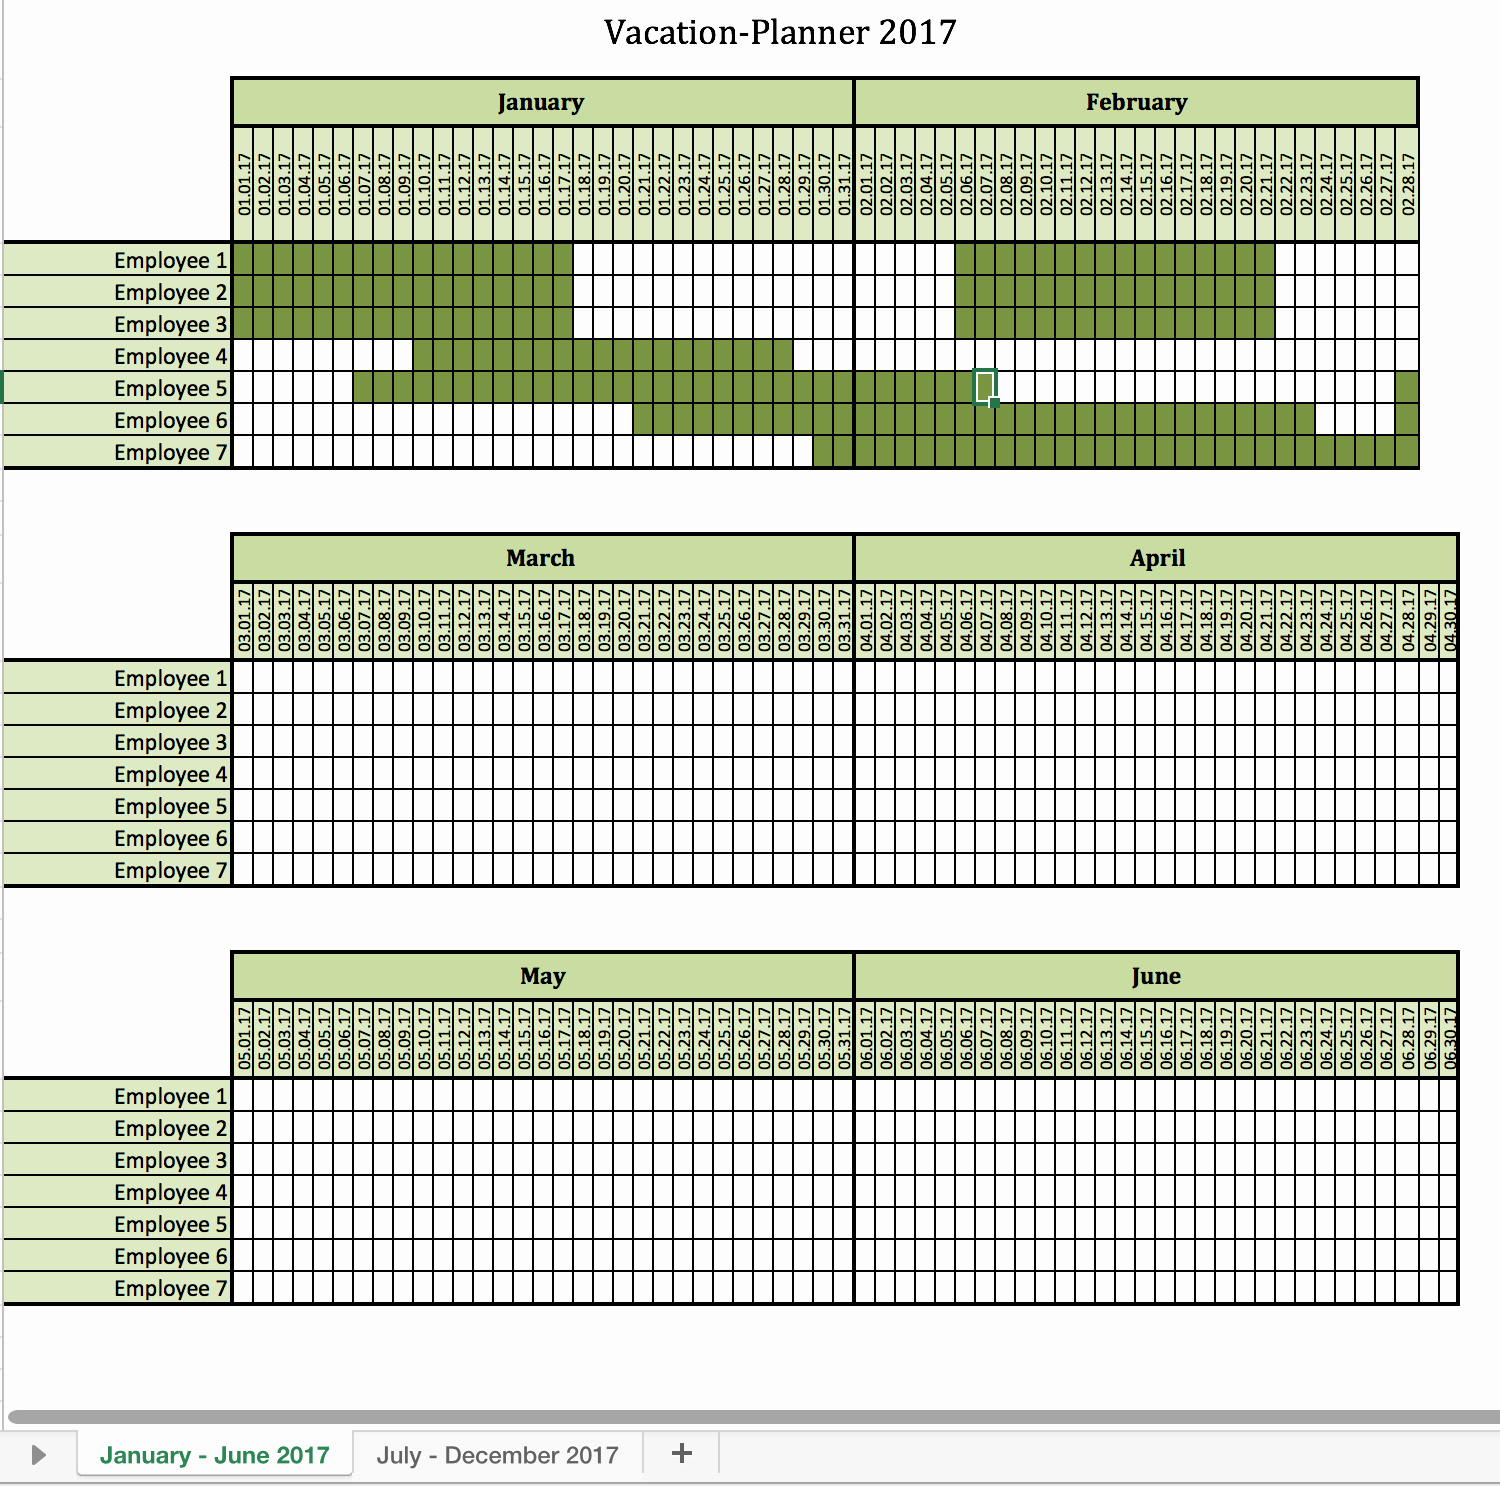 Trip Planner Template Excel Fresh Vacation Planner 2017